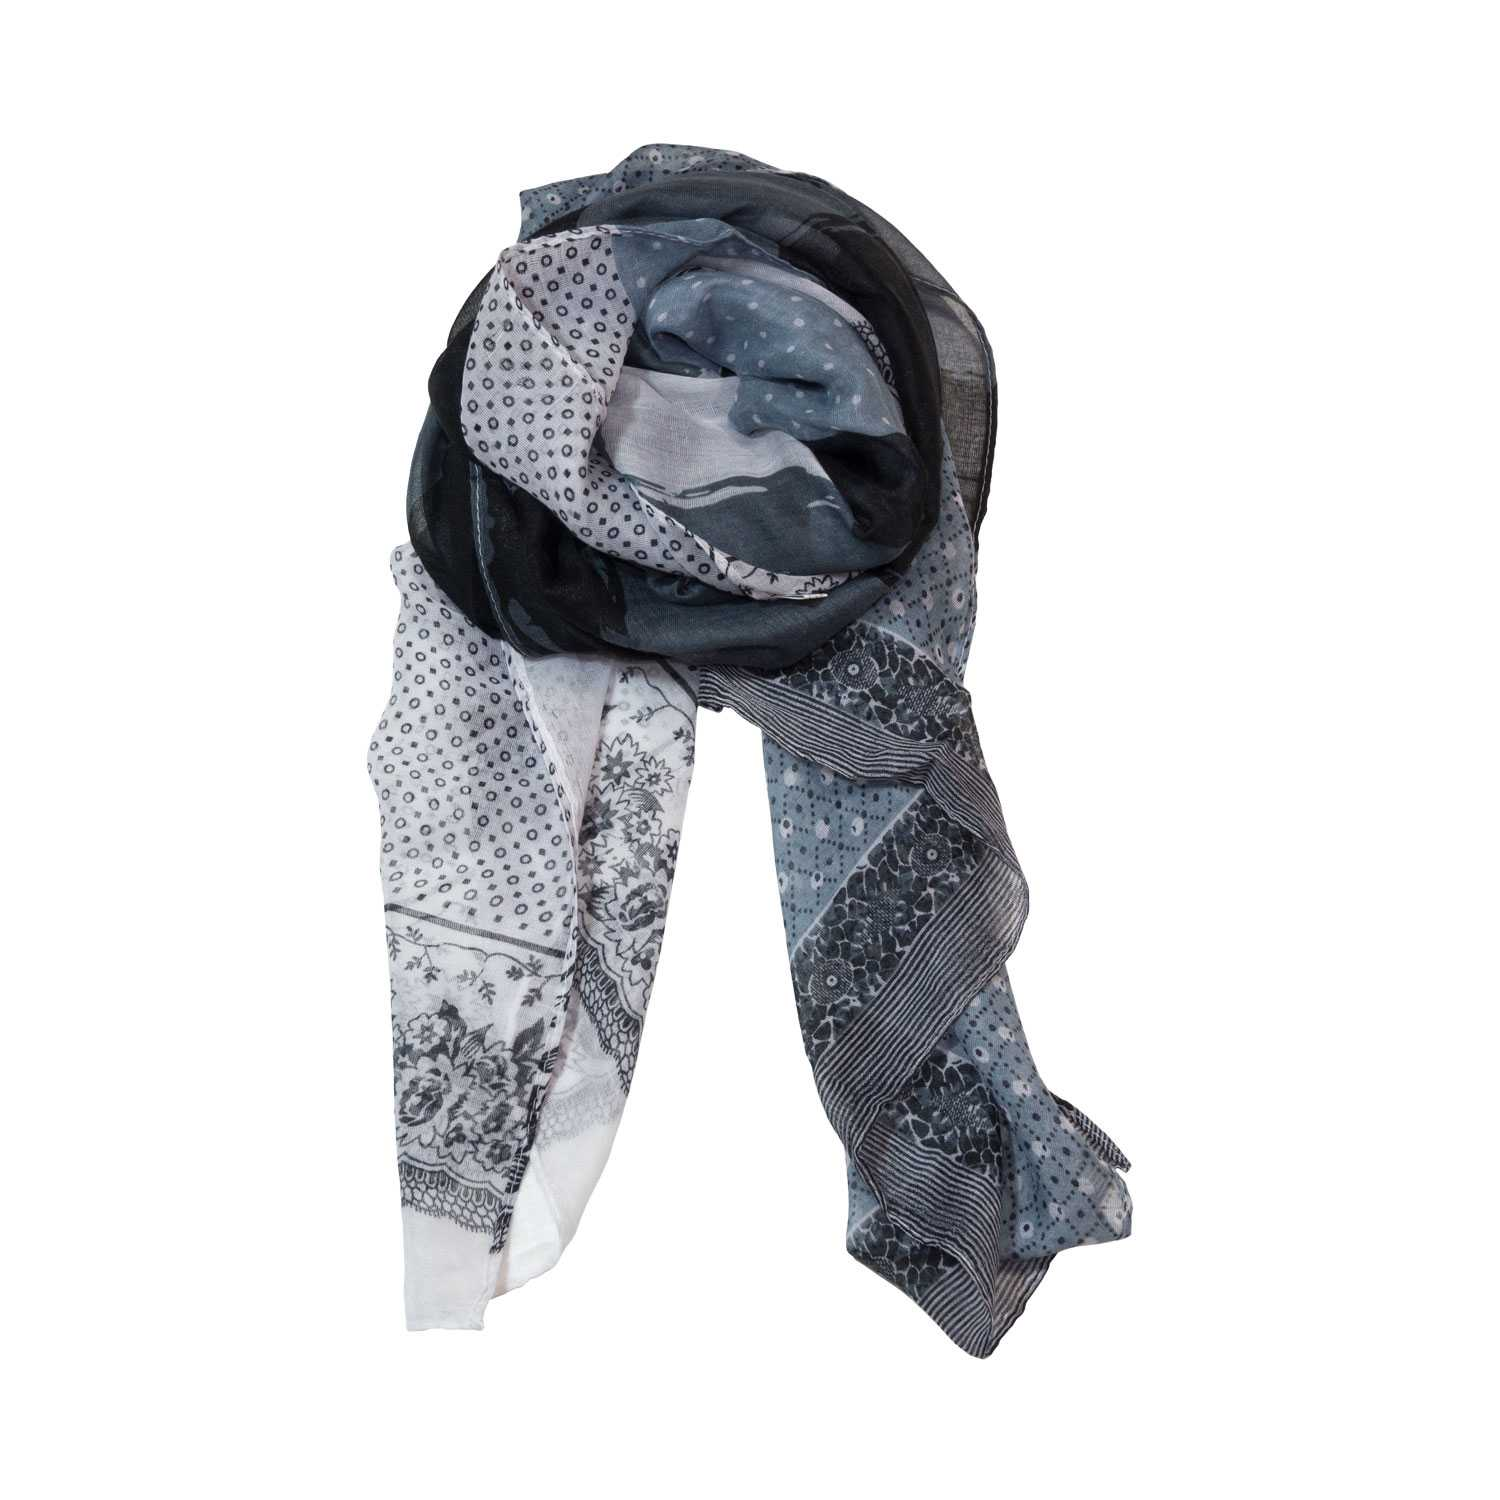 Cozy Square and Polka Dot Pattern Fashion Scarves Wrap - Zestique